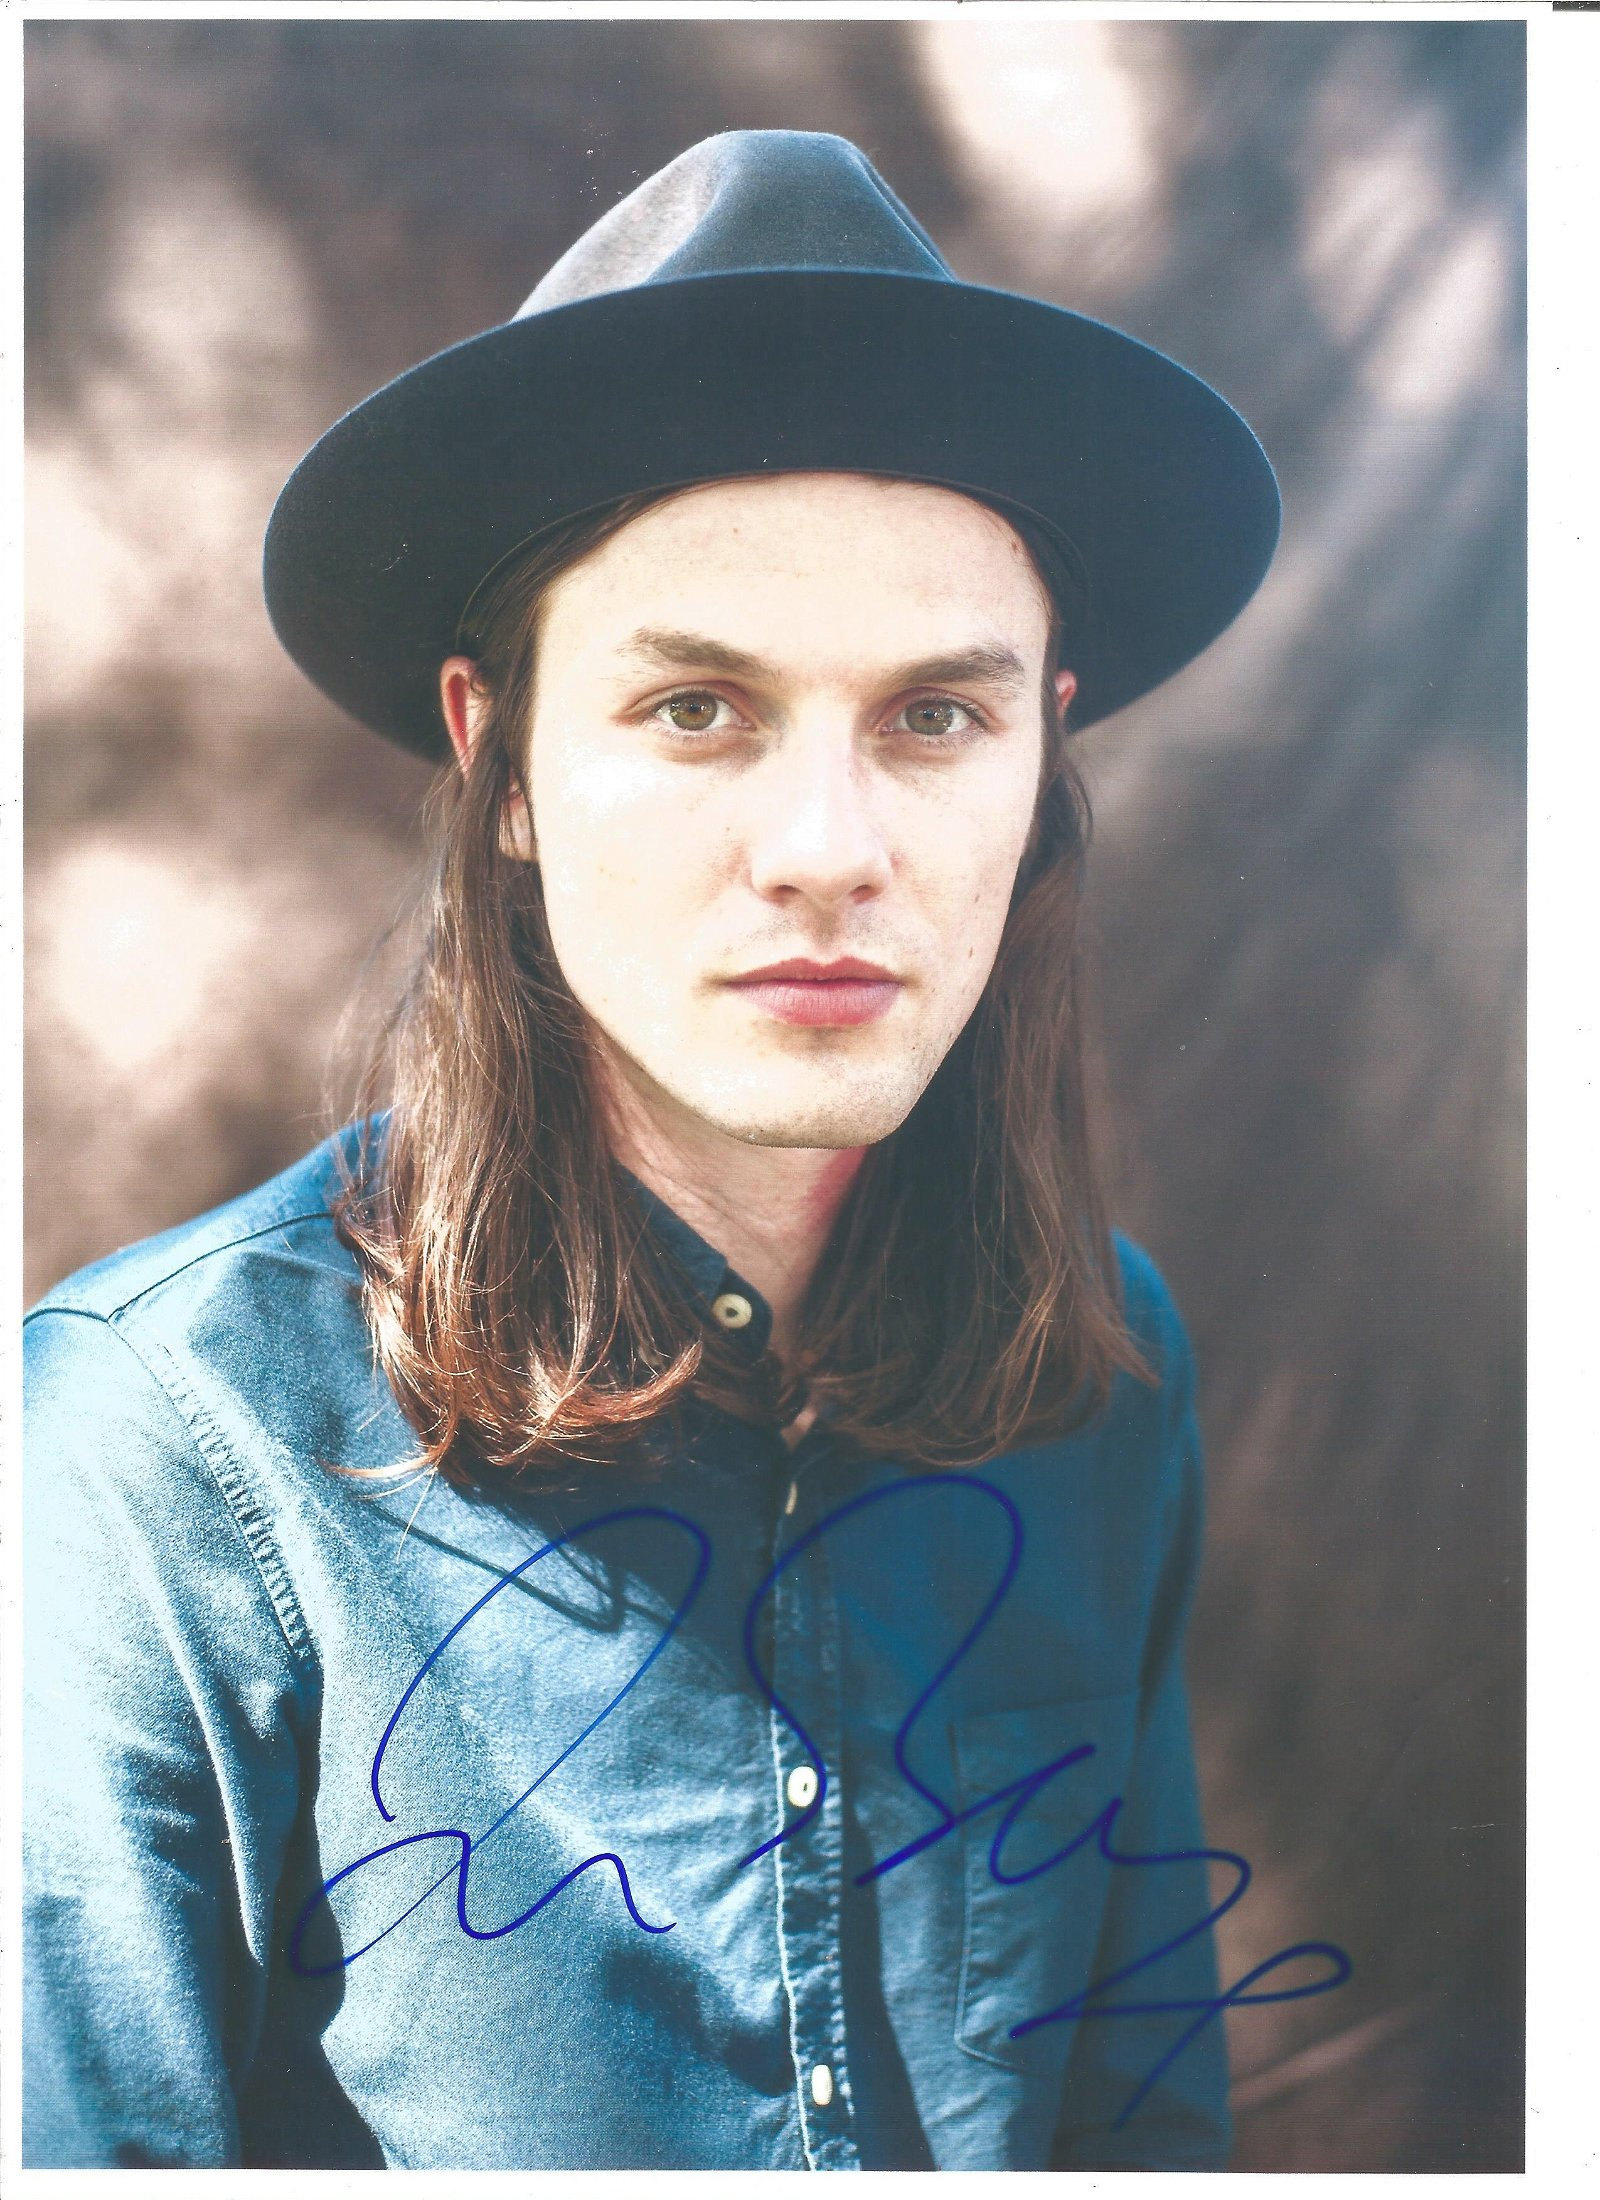 James Bay Singer Signed 8x12 Photo. Good Condition. All